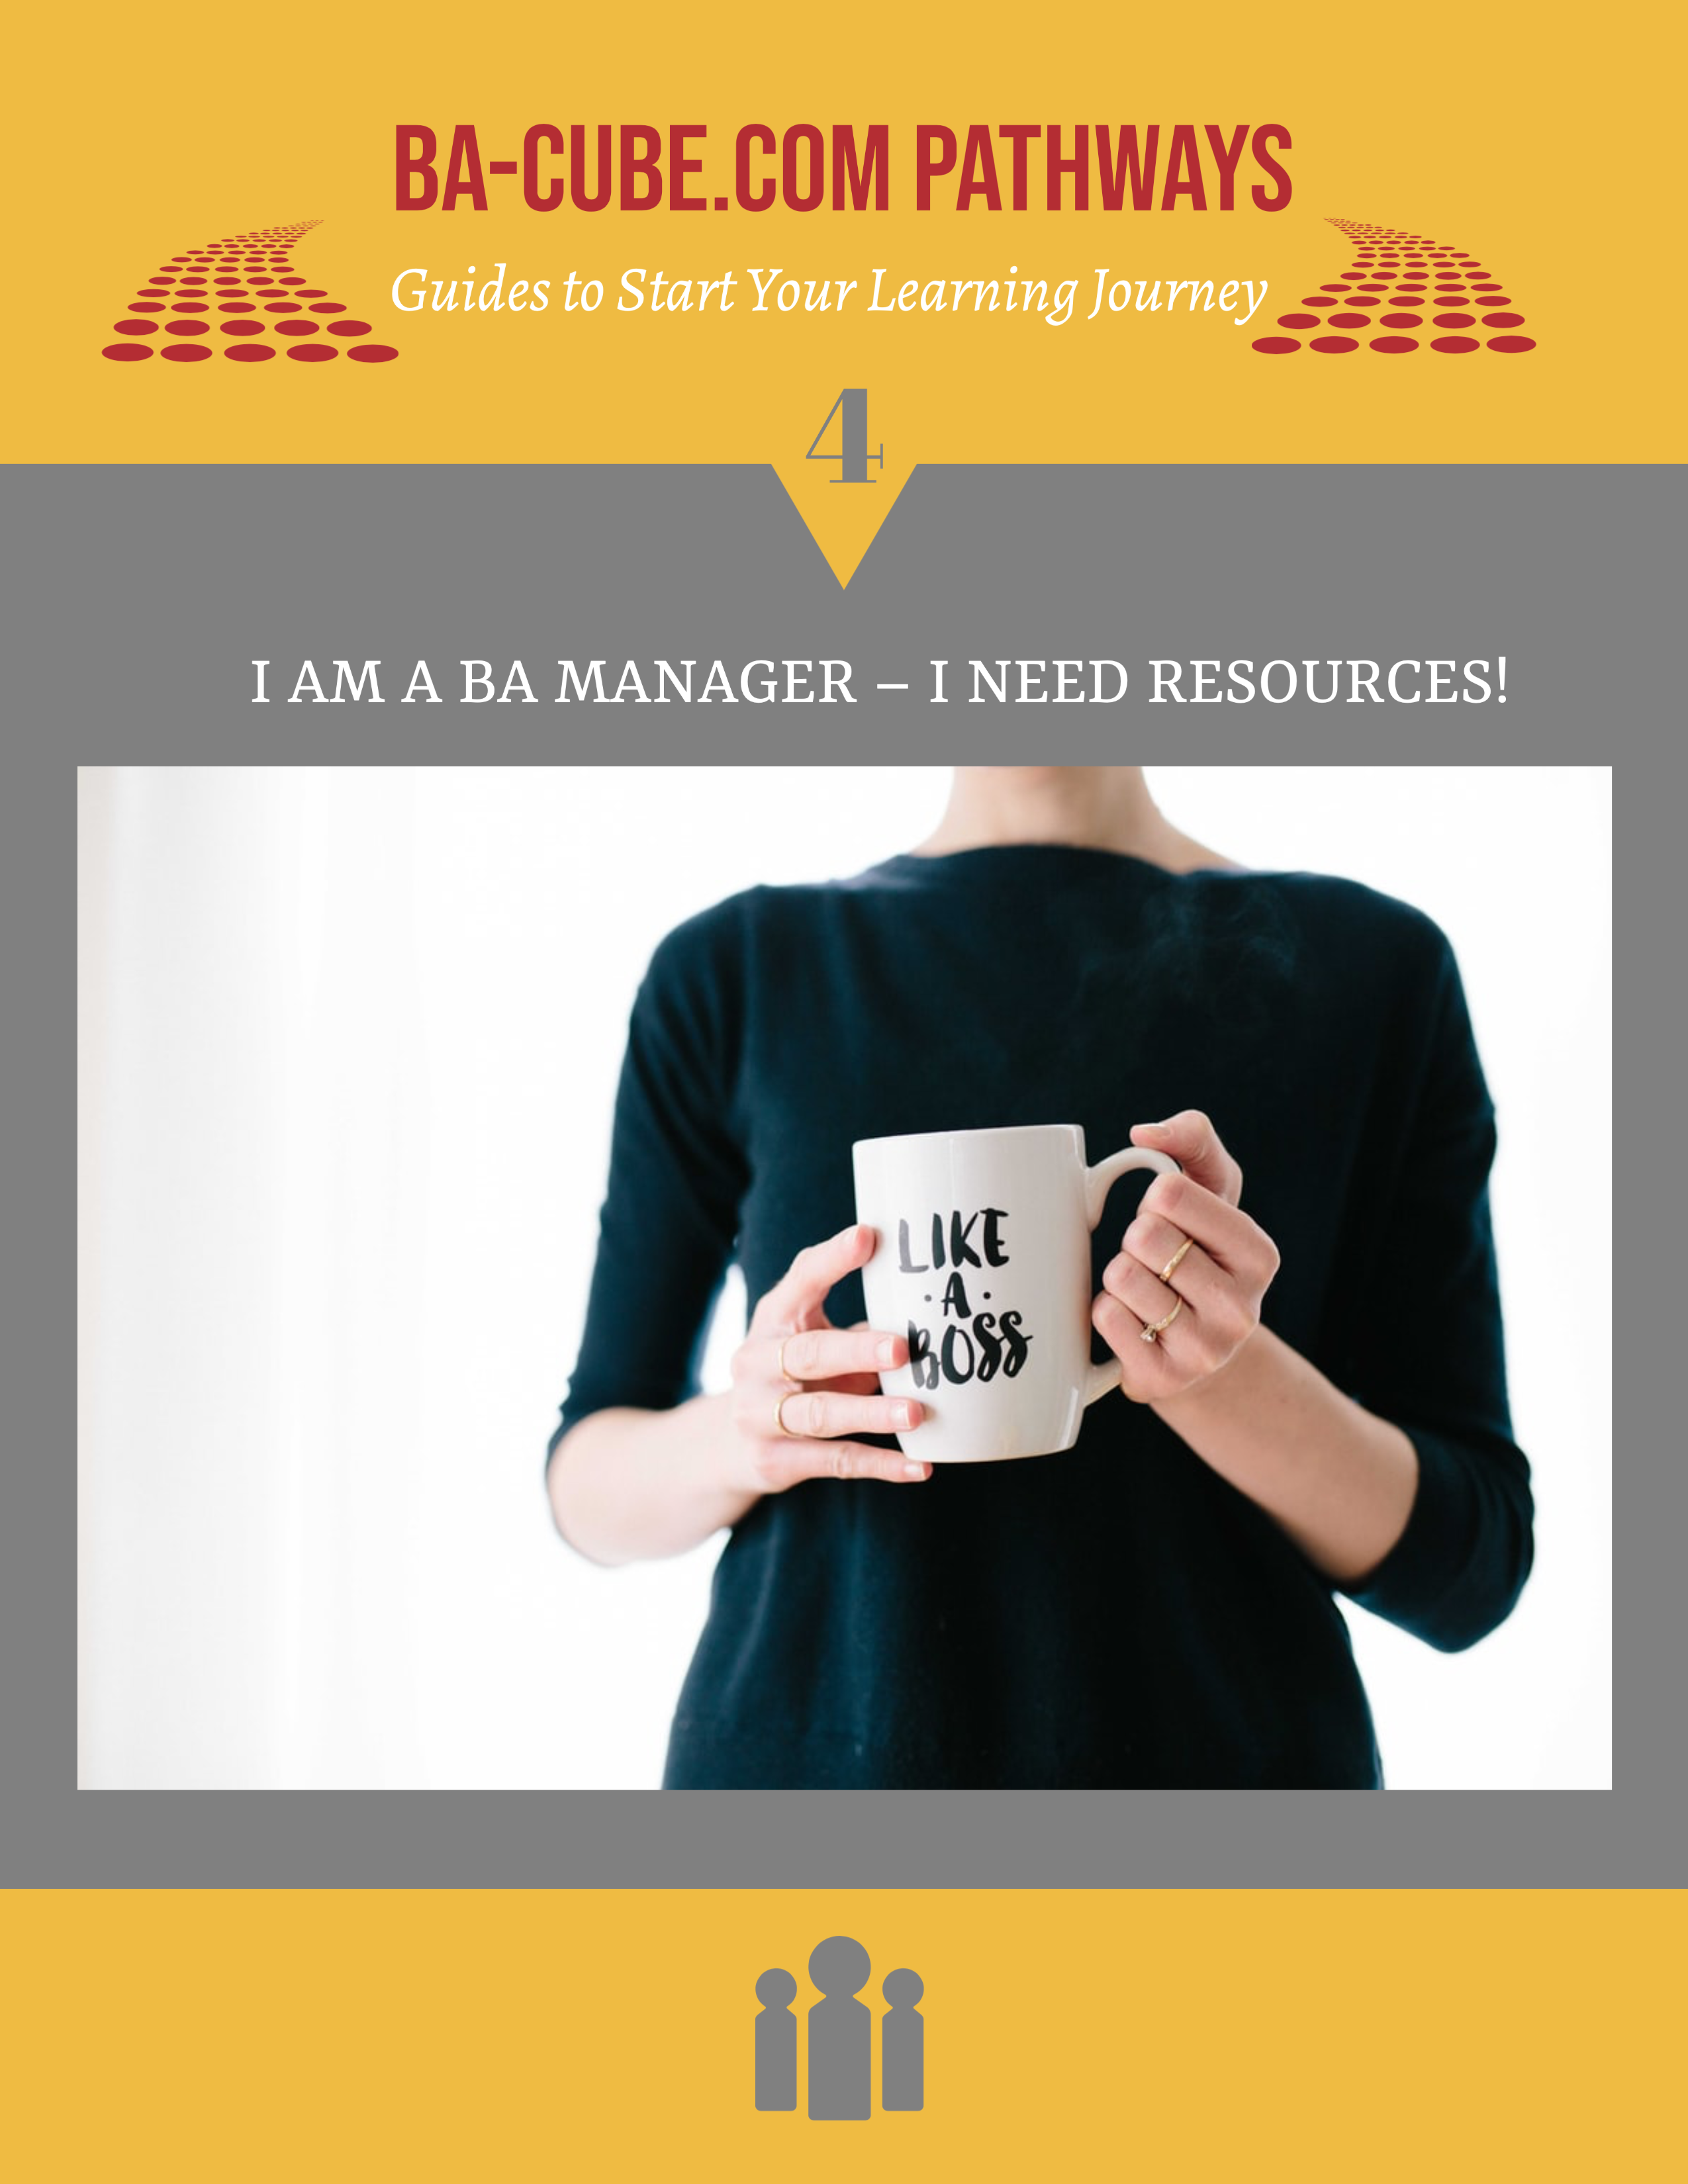 Pathway 4: I am a BA Manager – I need resources for my Practice!